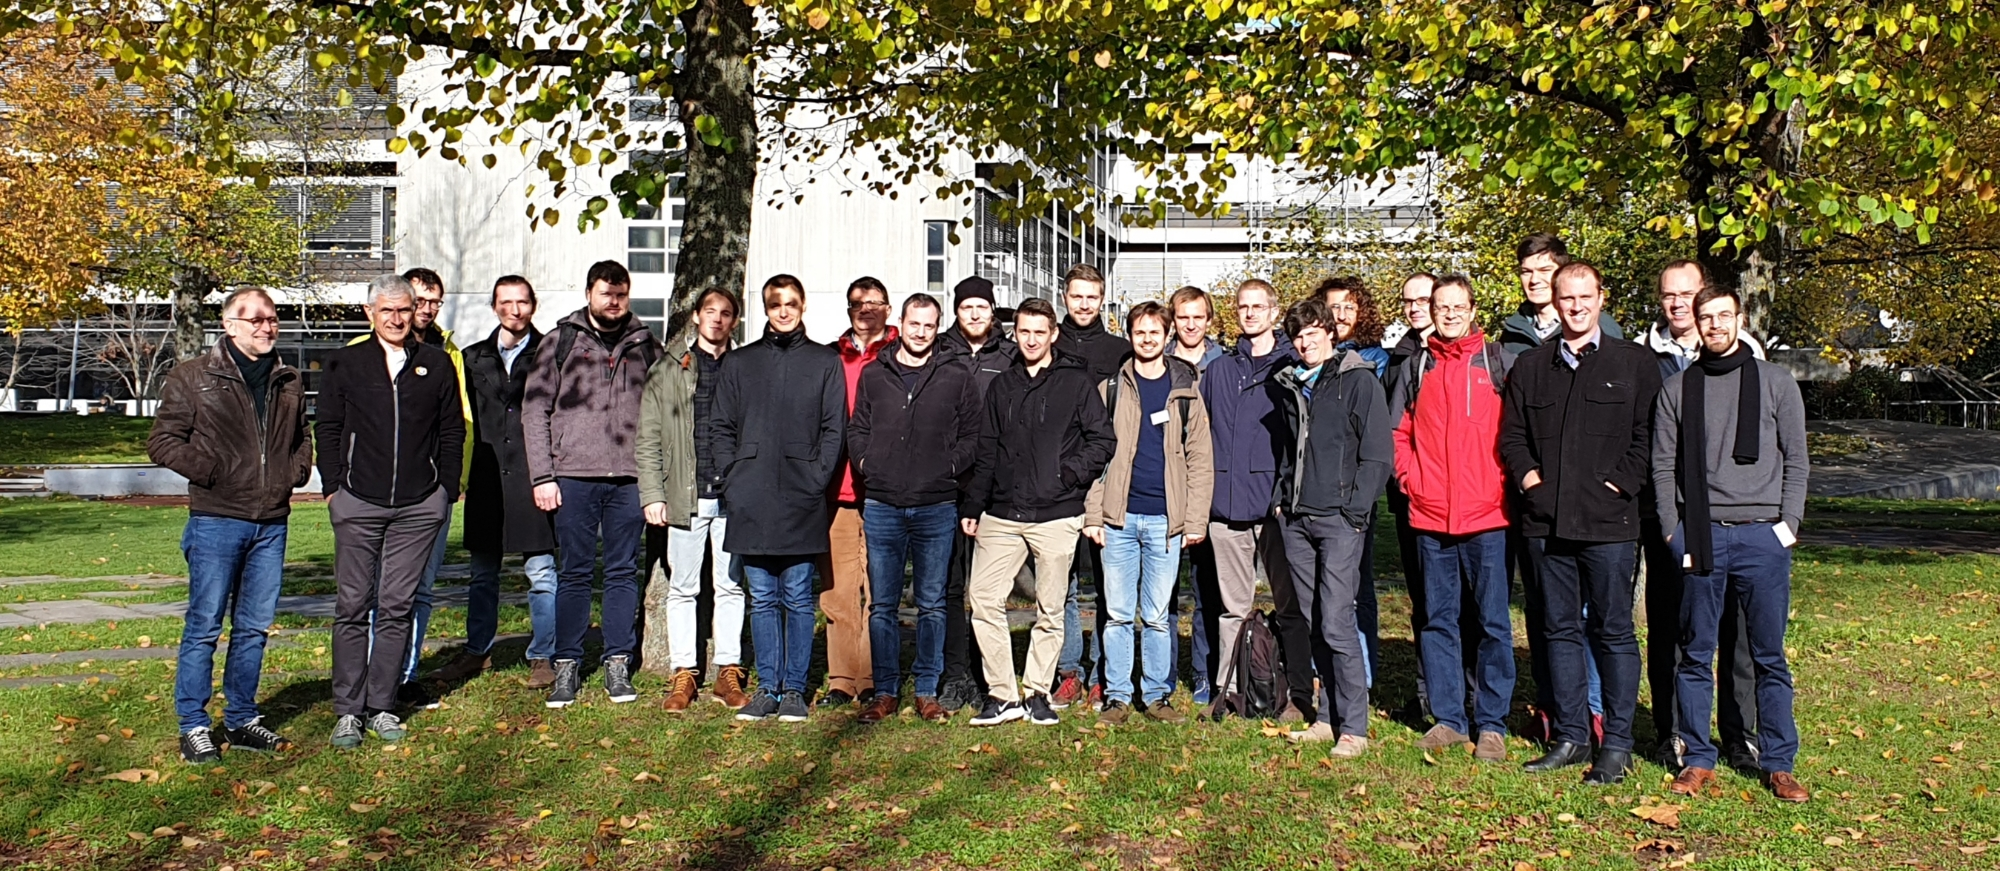 Participants of the Rydberg task force meeting on 12 - 13 November 2019